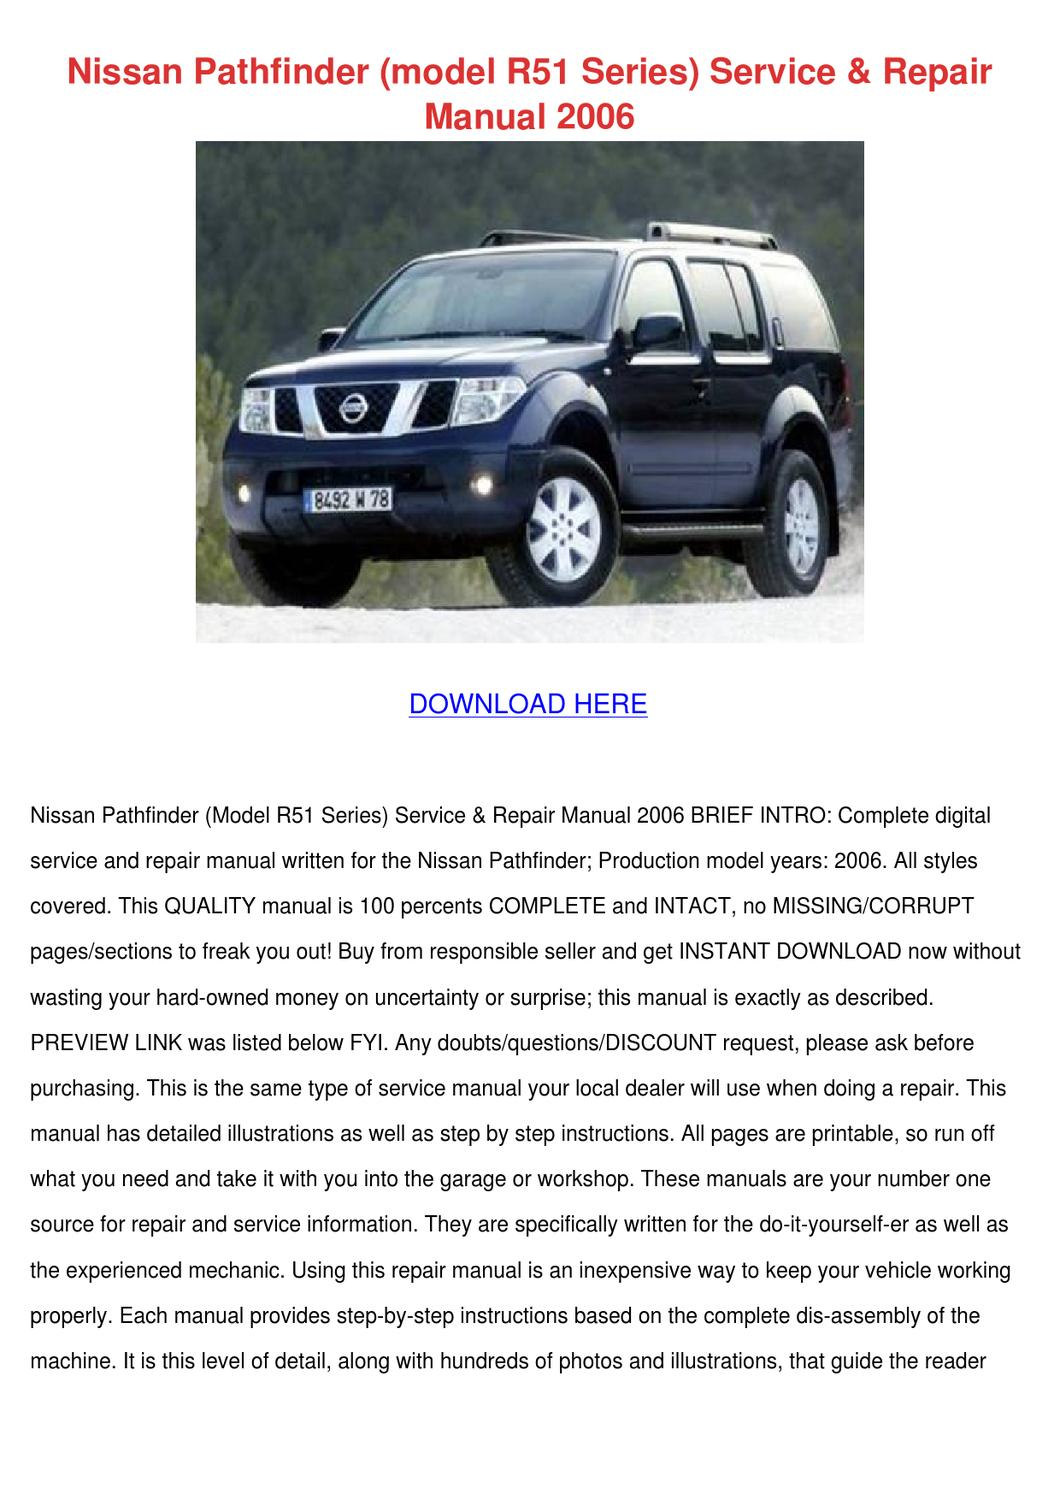 nissan pathfinder r51 workshop manual